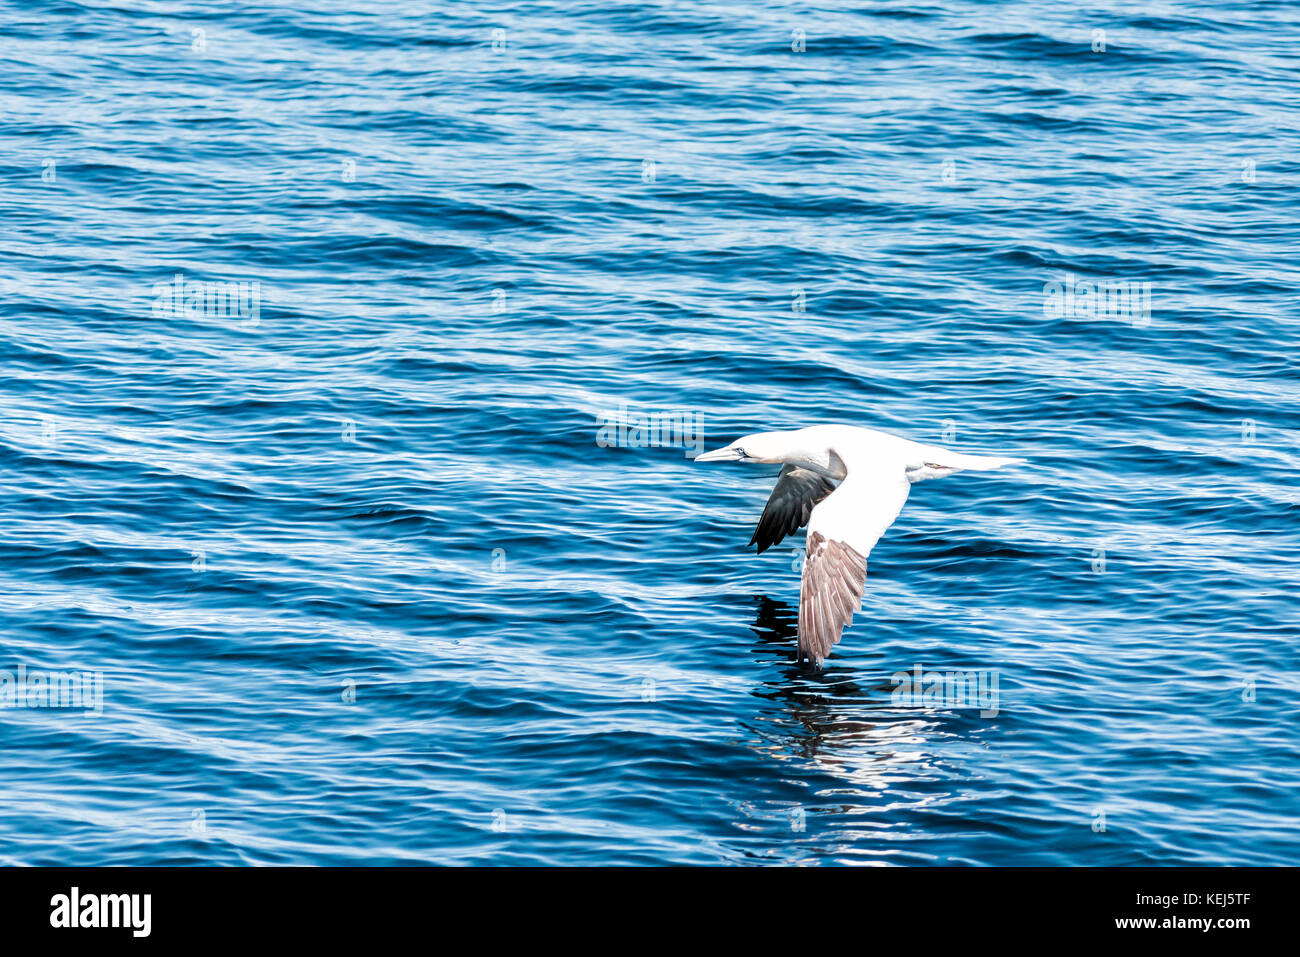 One white gannet morus bird flying above water surface of ocean with reflection - Stock Image